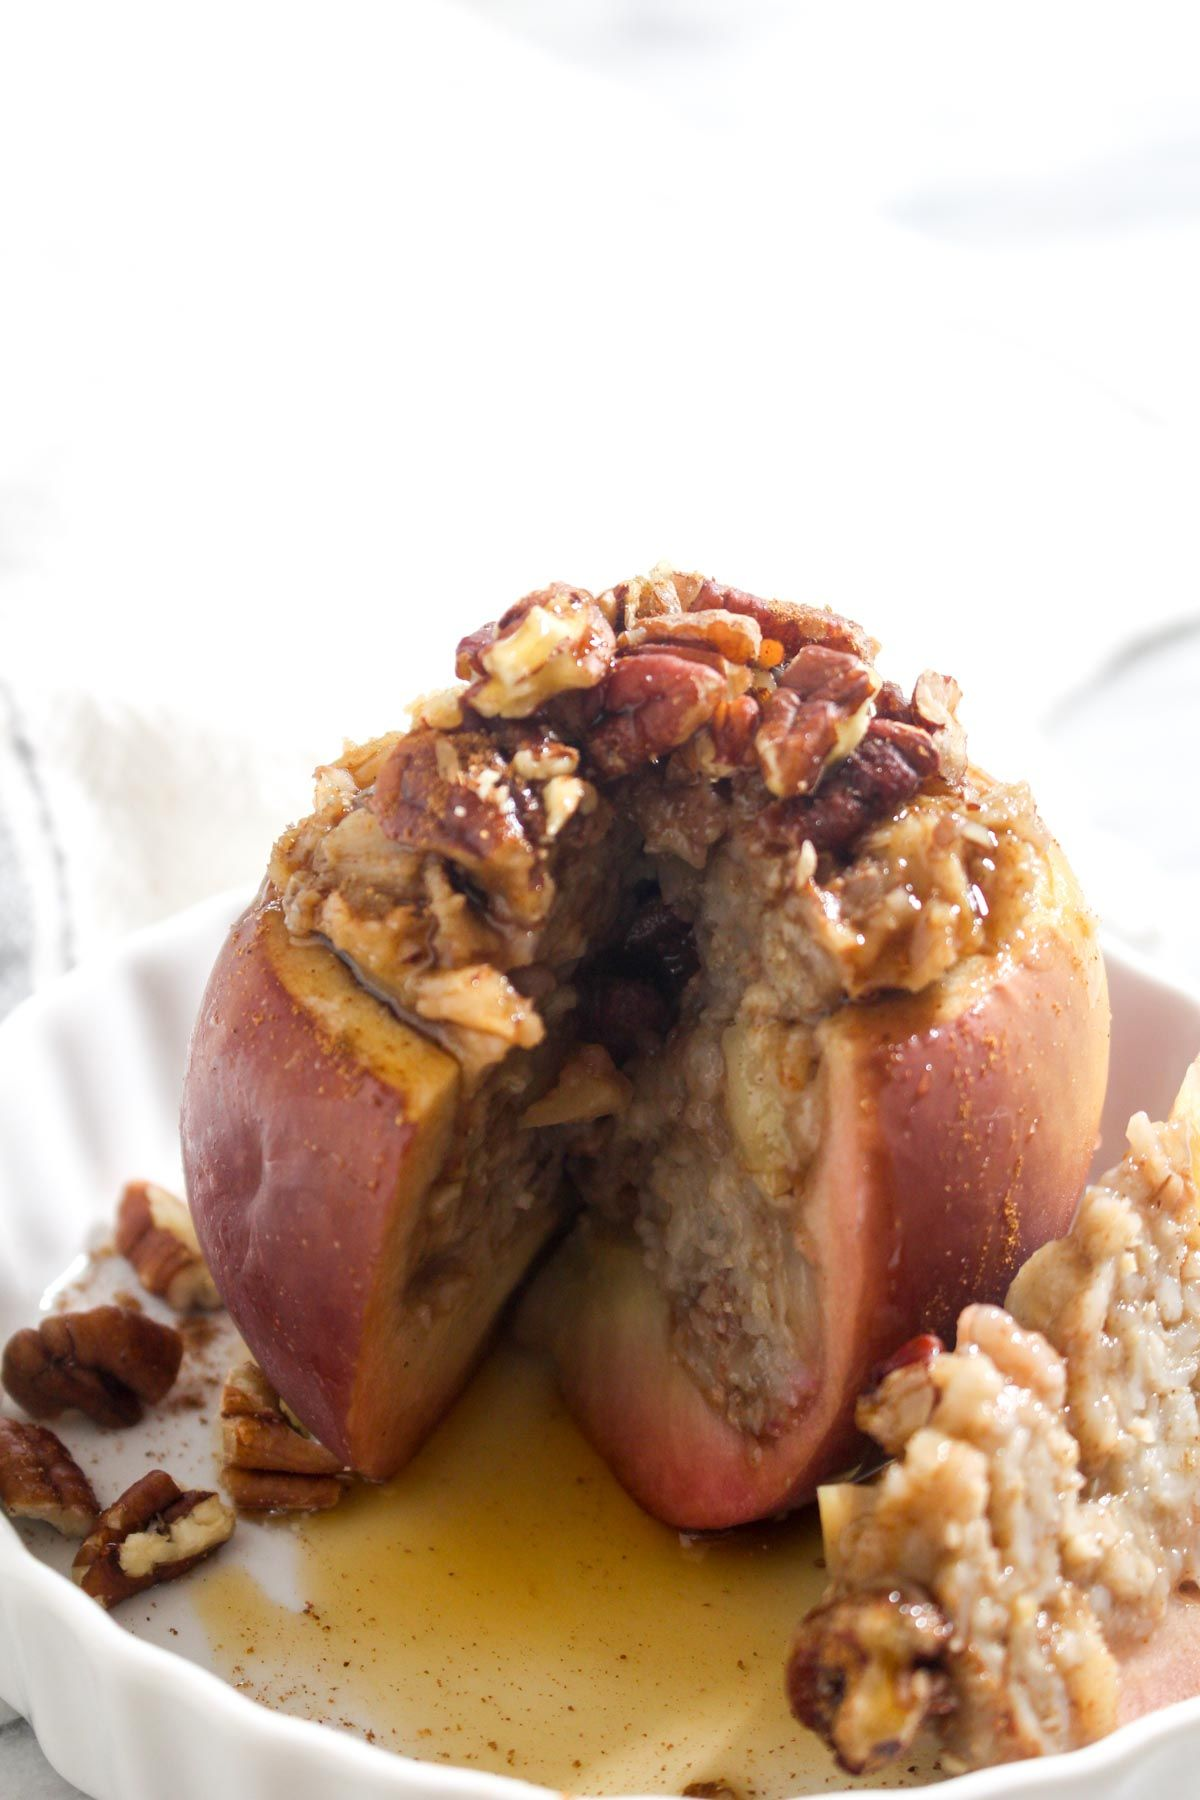 Thanksgiving oatmeal stuffed baked apples